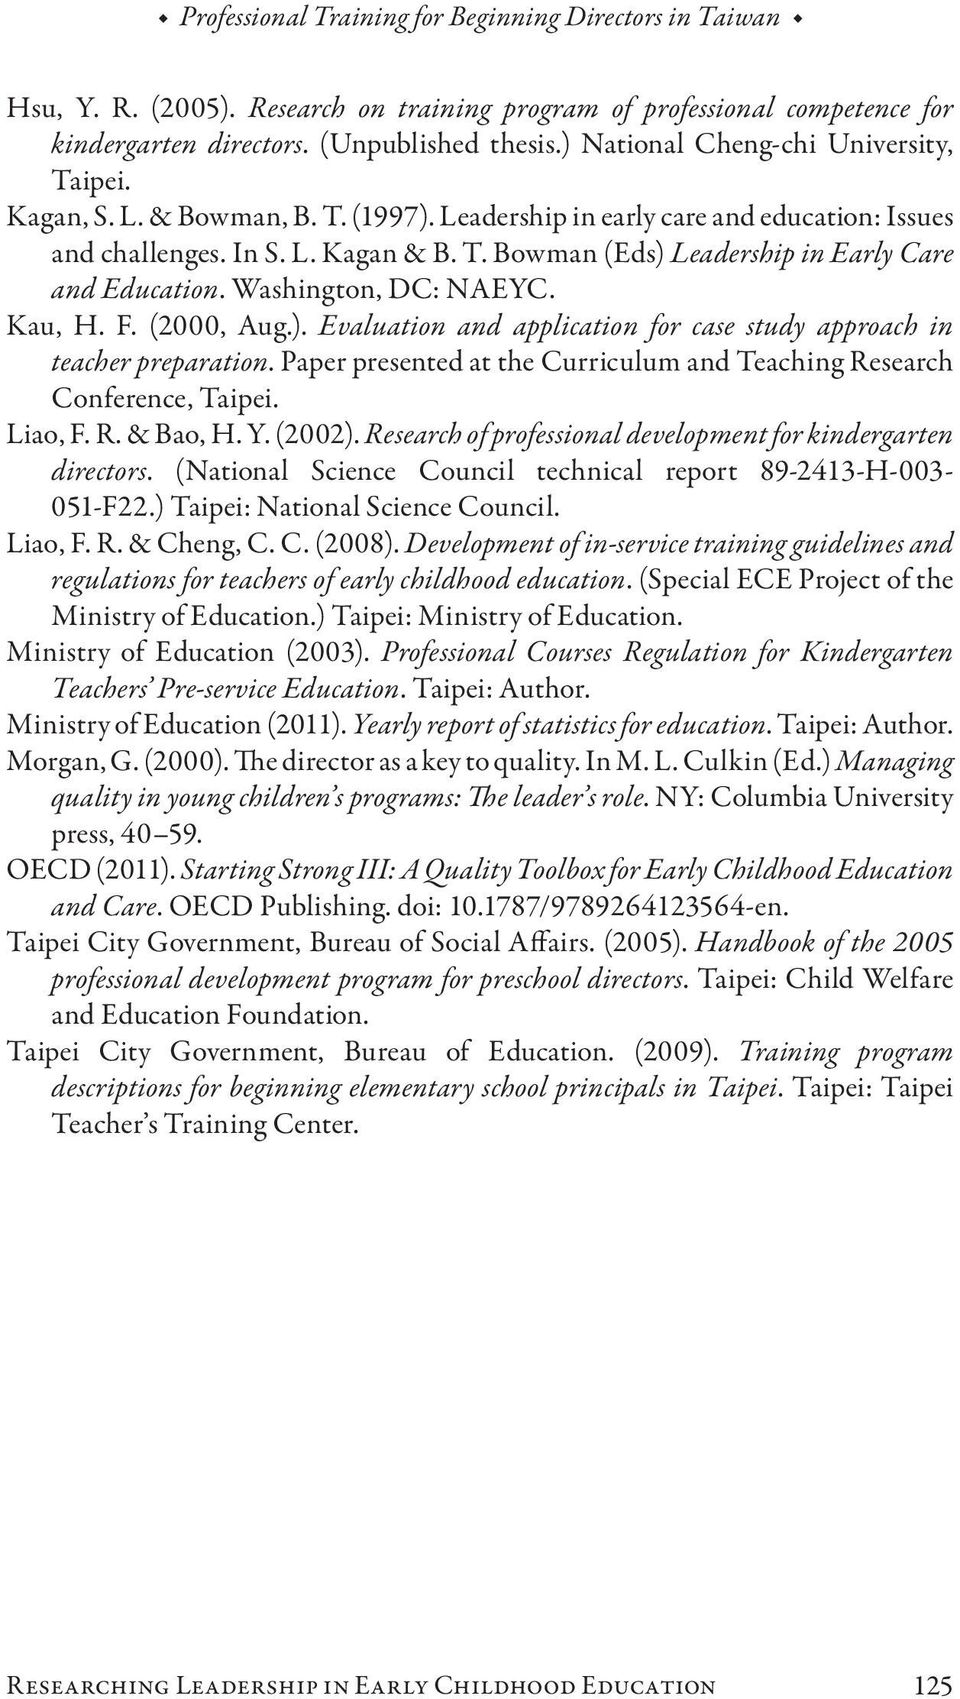 Washington, DC: NAEYC. Kau, H. F. (2000, Aug.). Evaluation and application for case study approach in teacher preparation. Paper presented at the Curriculum and Teaching Research Conference, Taipei.